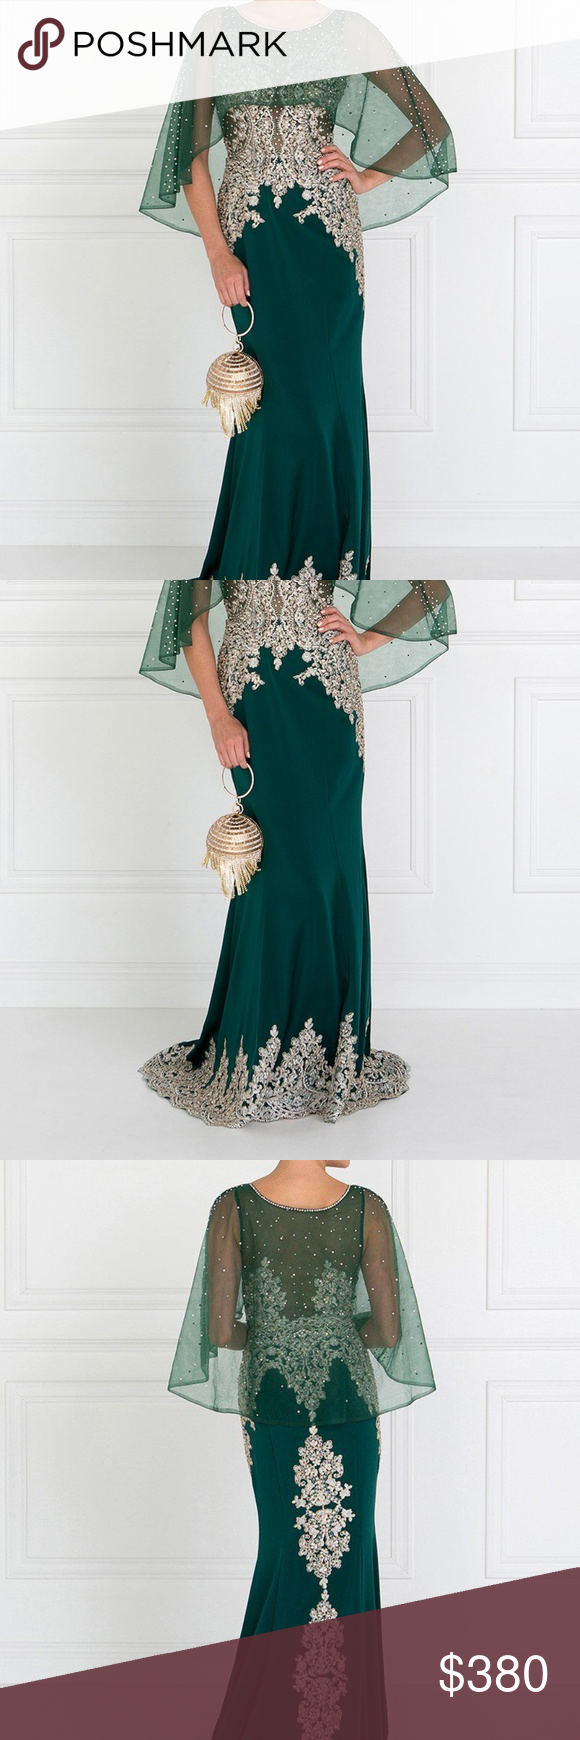 18742523b8 Spotted while shopping on Poshmark  MOTHER OF BRIDE WEDDING GOWN DRESS  GLS1595 GREEN!